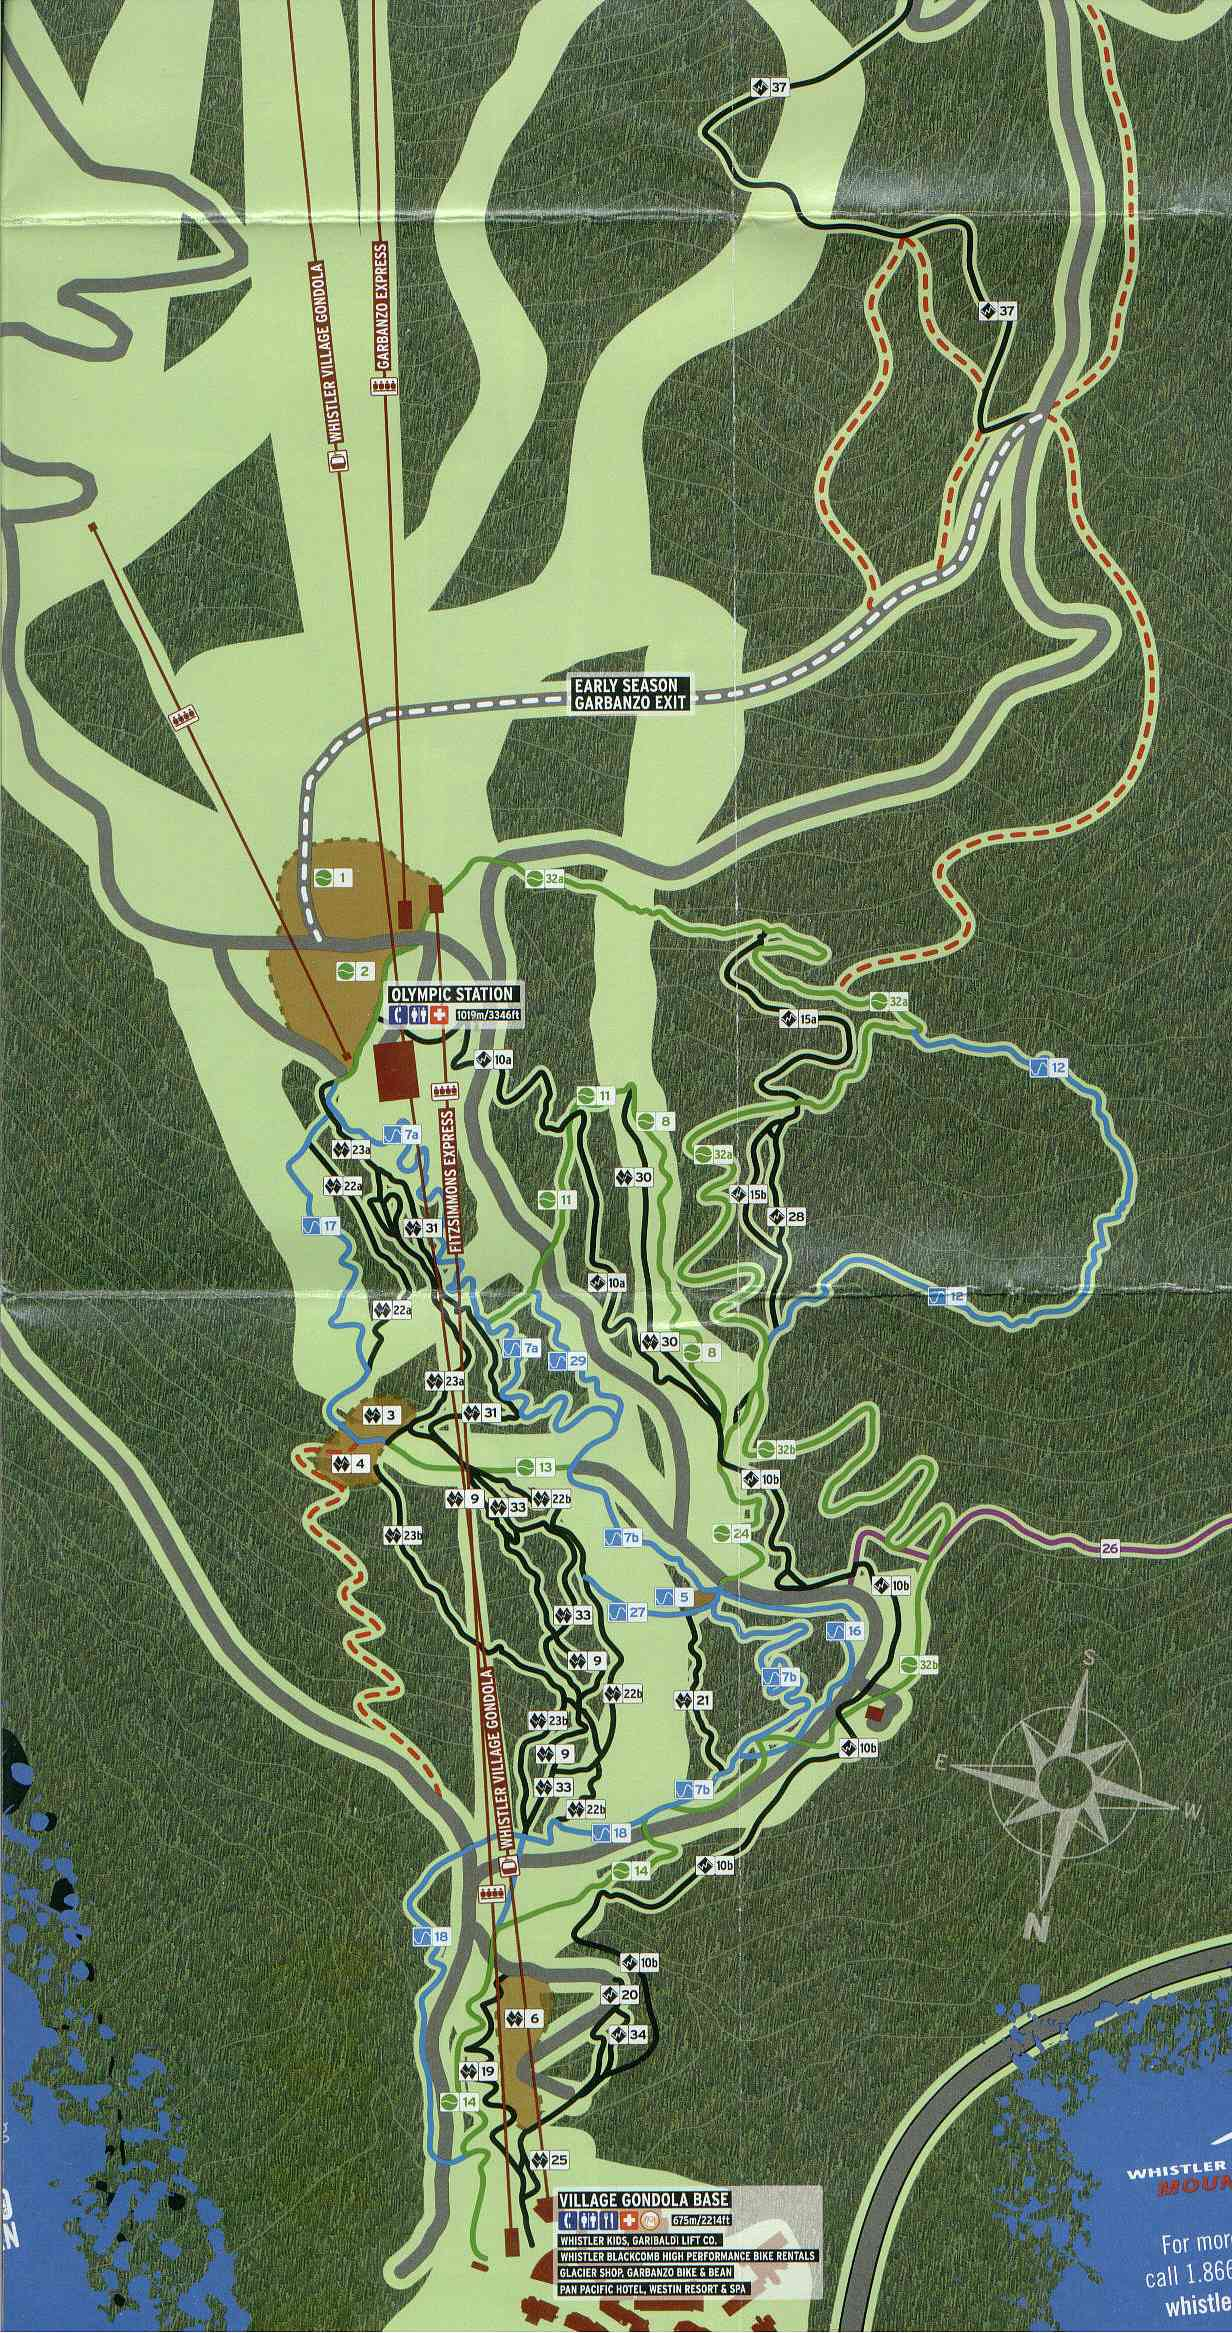 Whistler Mountain Bike Park Brochure And Trails Map